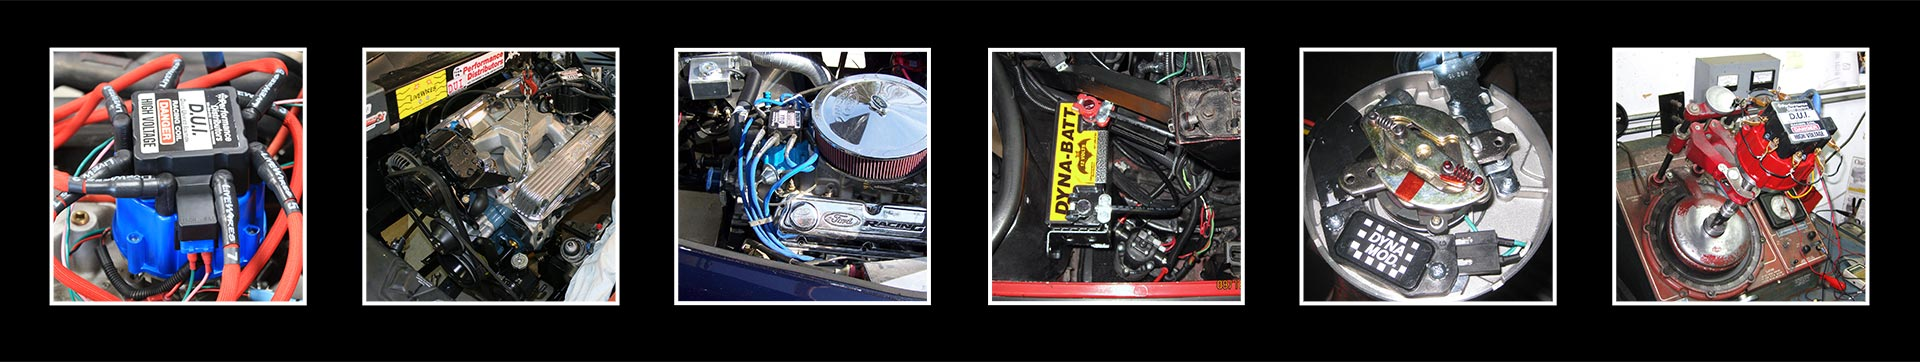 Professional Tips | Ignition Systems | Rev Limiters | LiveWire | Florida